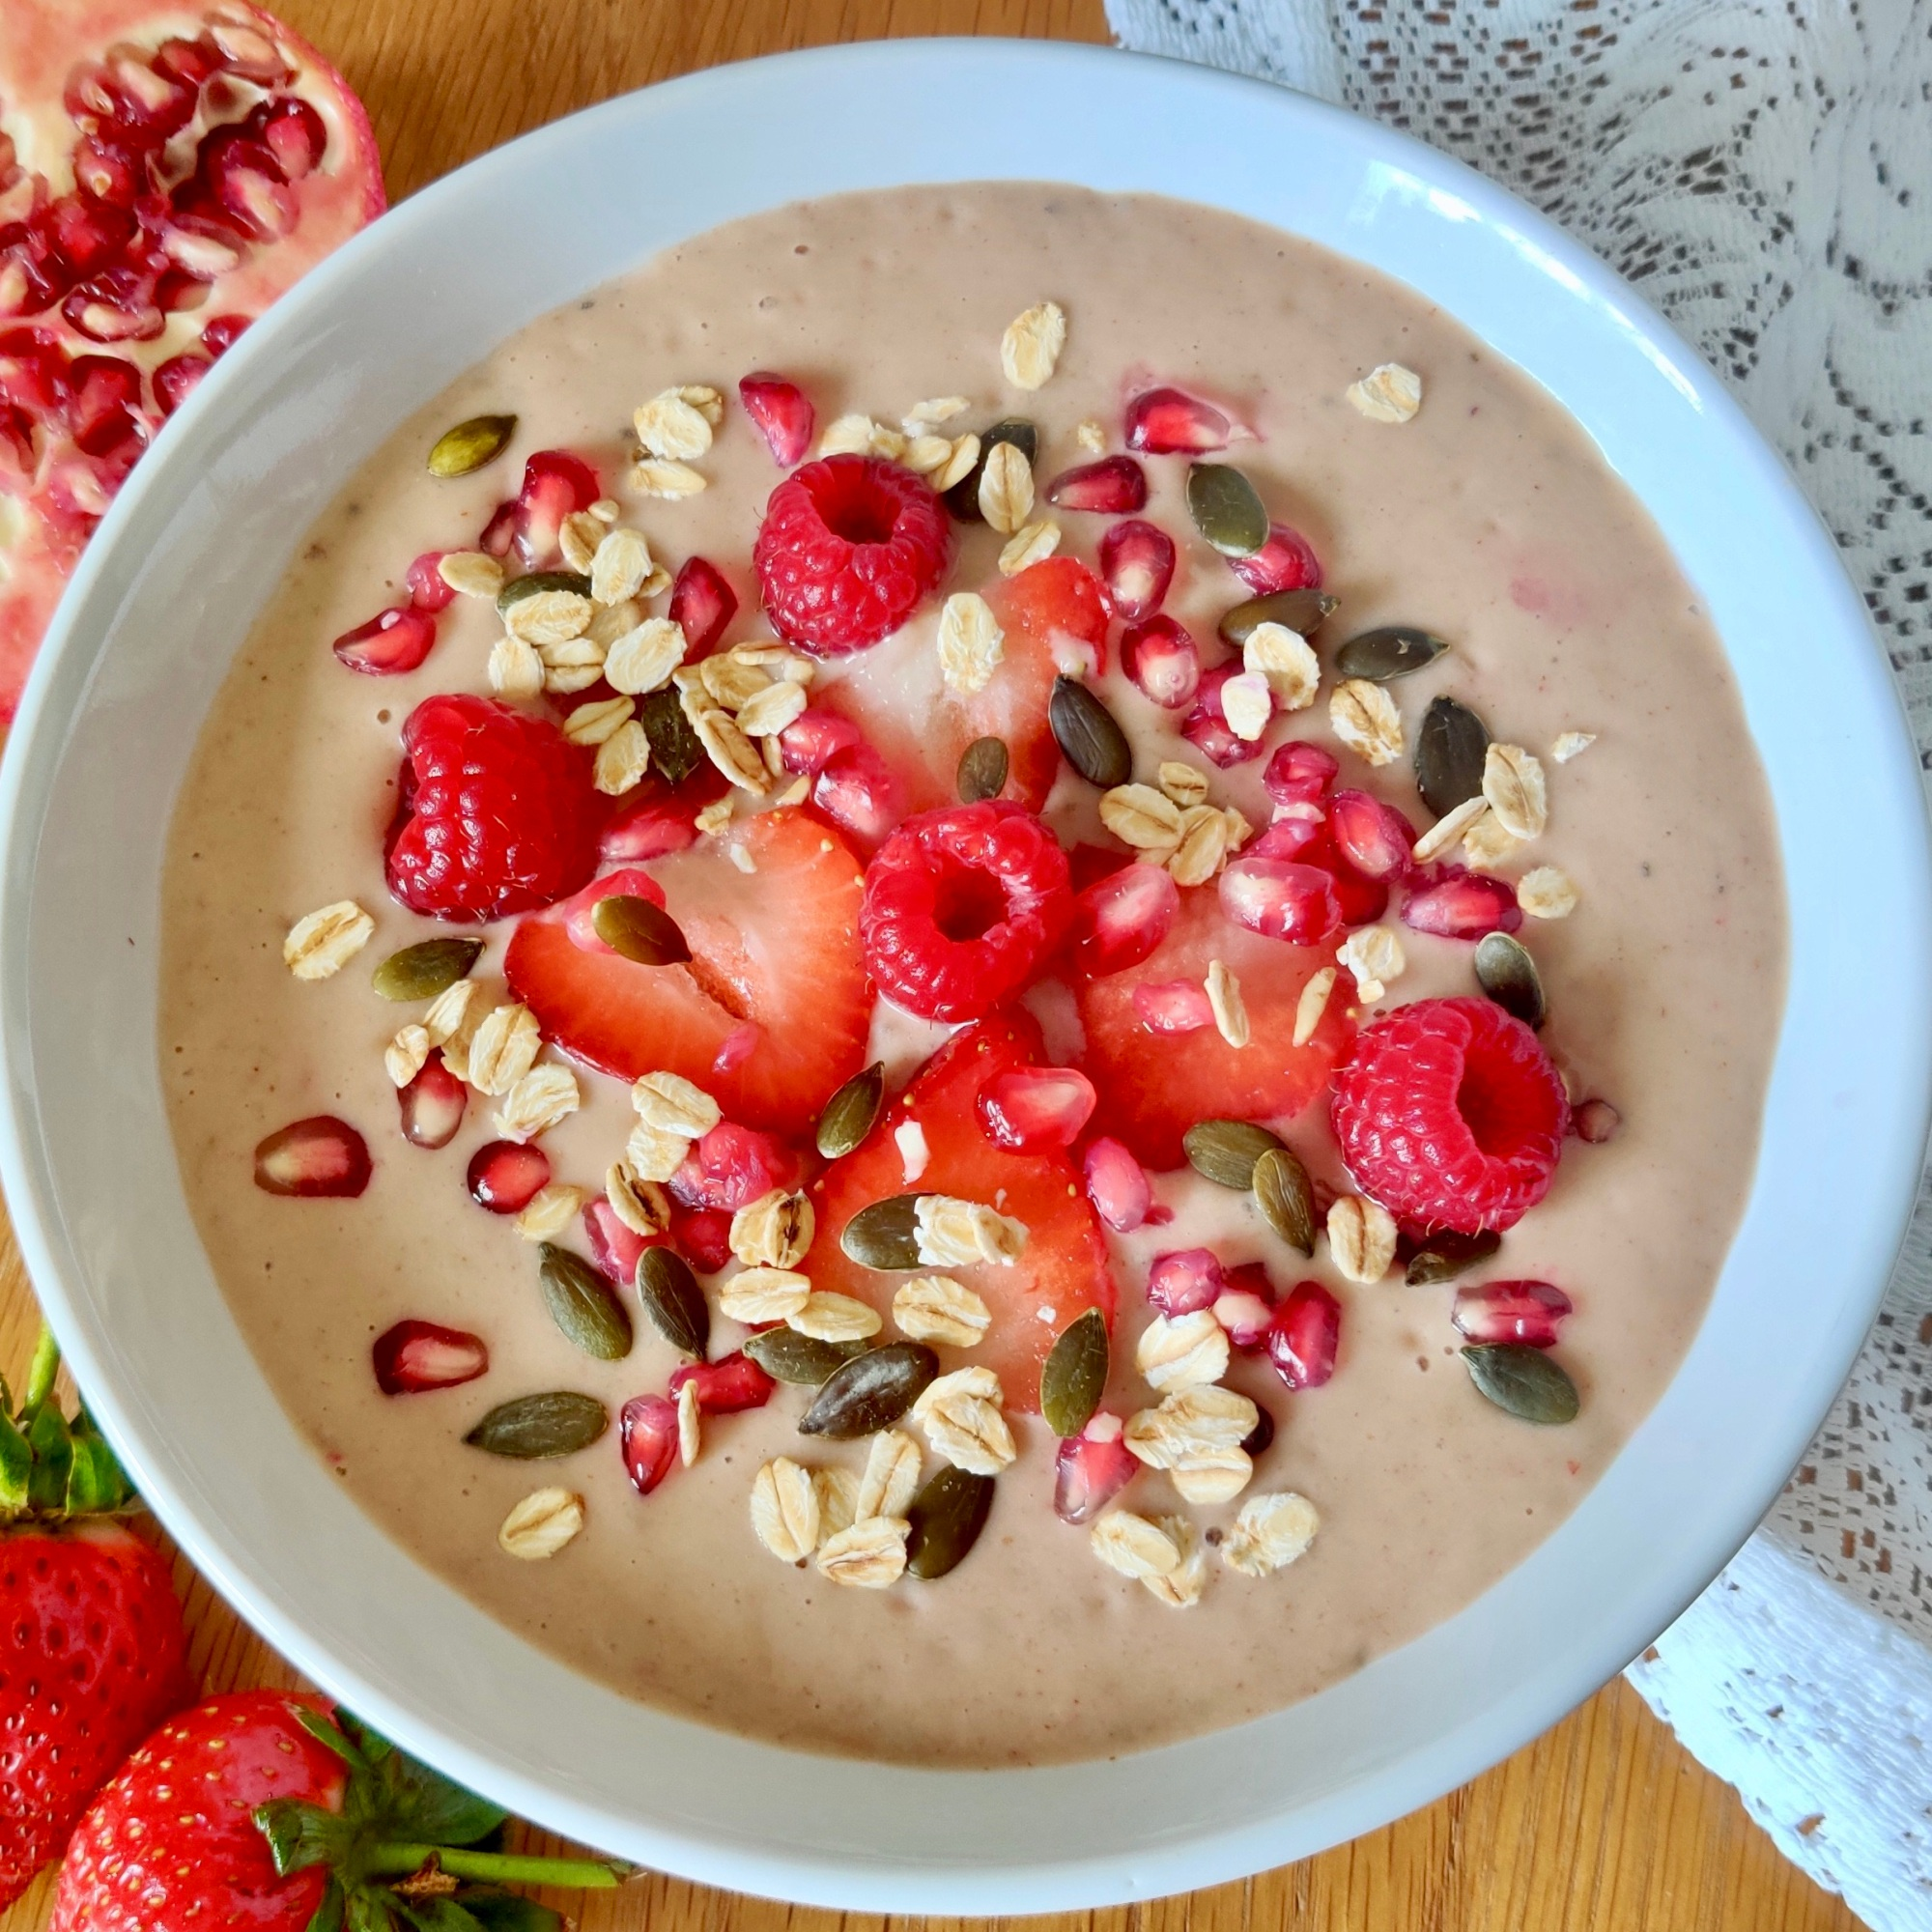 Sweet, simple and satisfying are the words that spring to mind when I think of this delicious smoothie bowl.